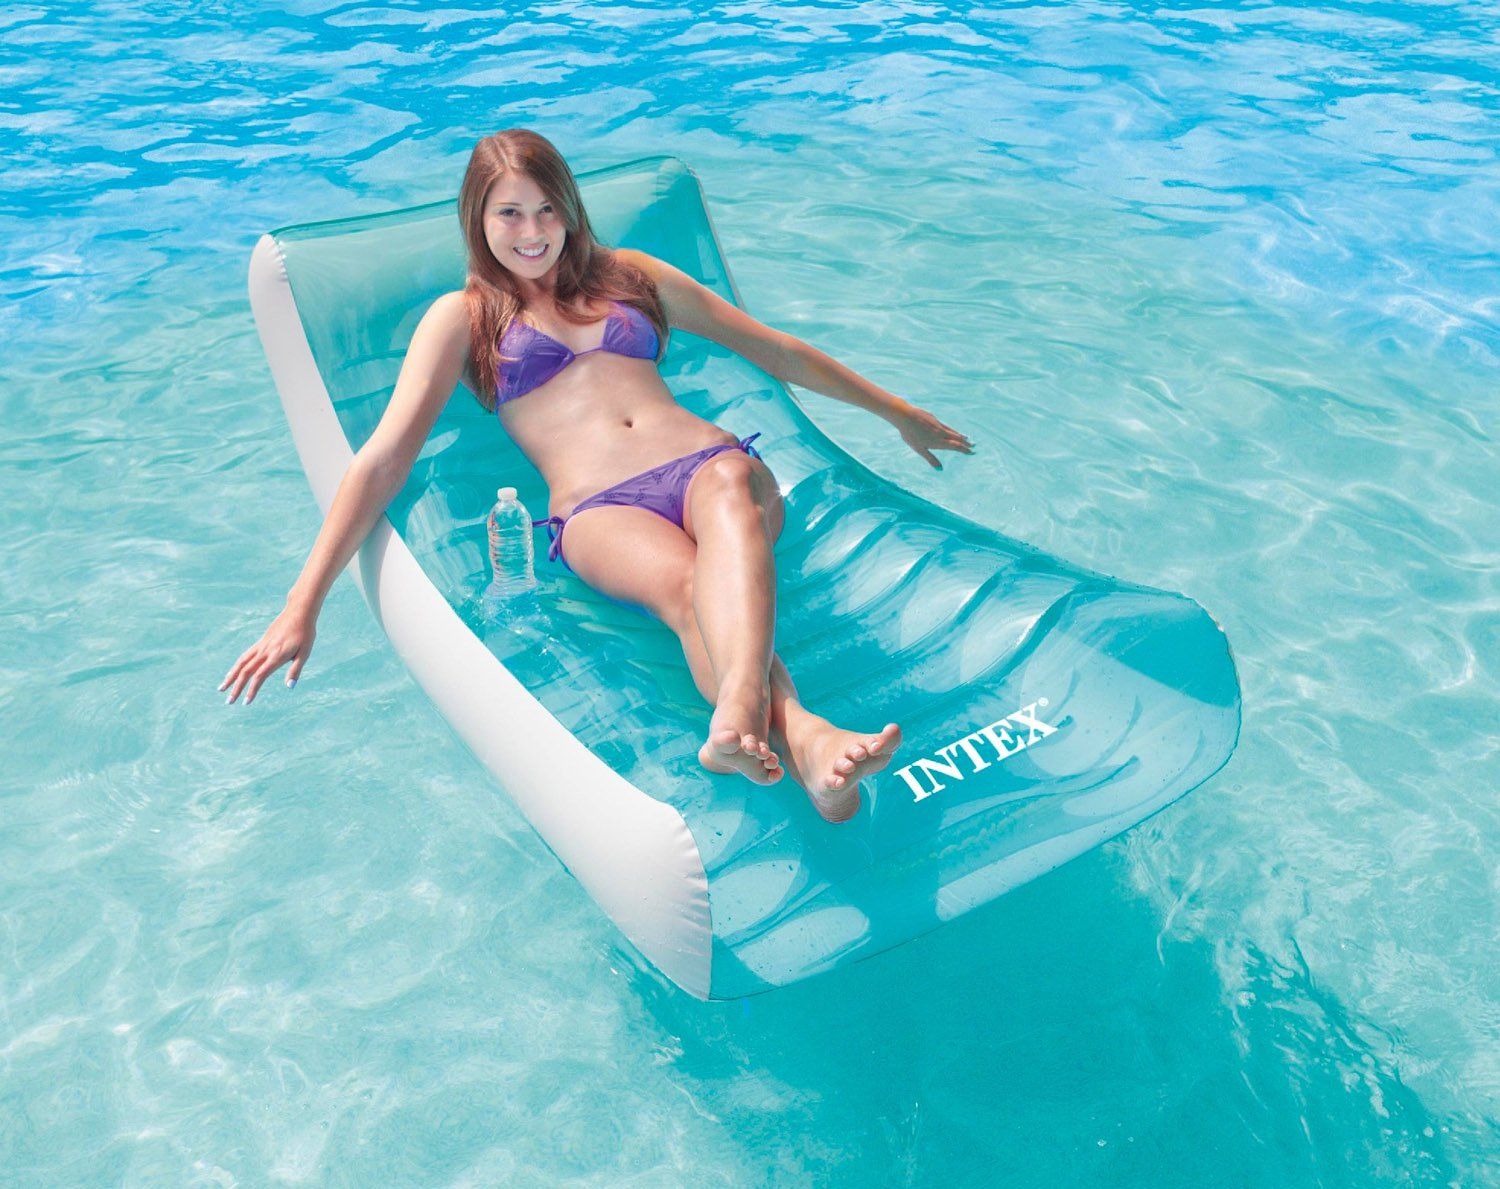 Beau Intex Inflatable Rockinu0027 Lounge Swimming Pool Floating Raft Chair With  Cupholder